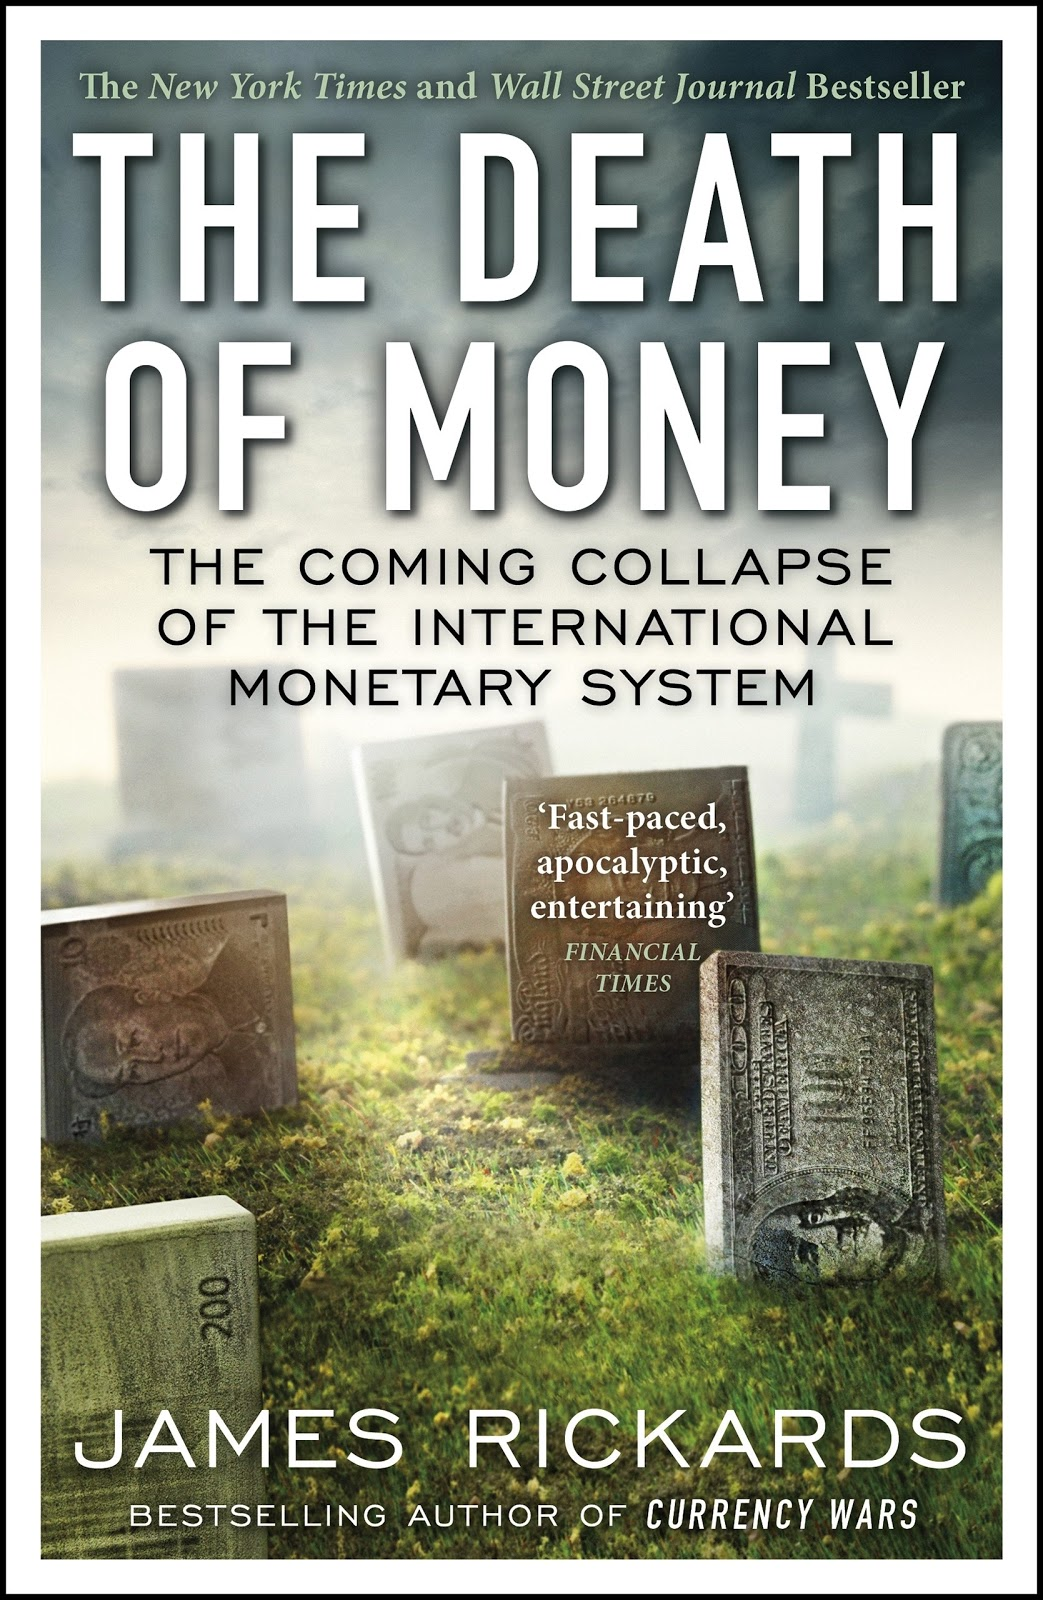 The Death of Money The Coming Collapse of the International Monetary System by James Richards